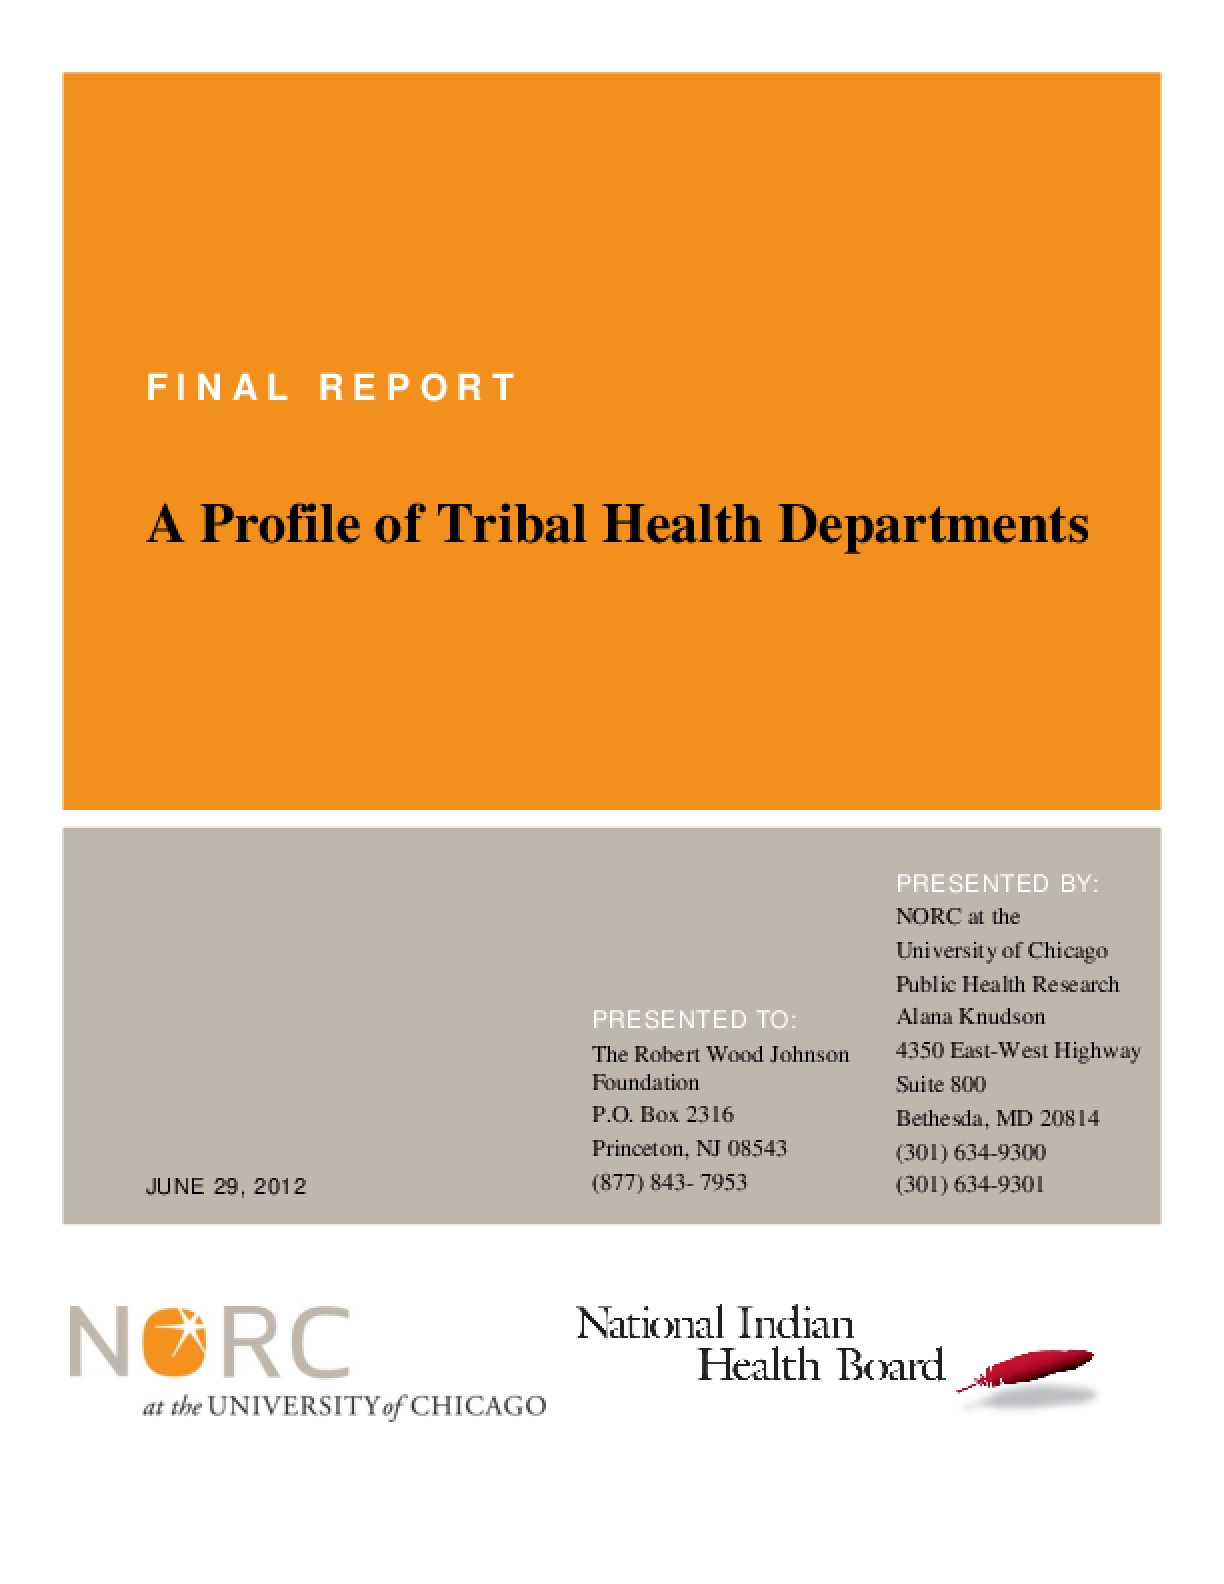 A Profile of Tribal Health Departments